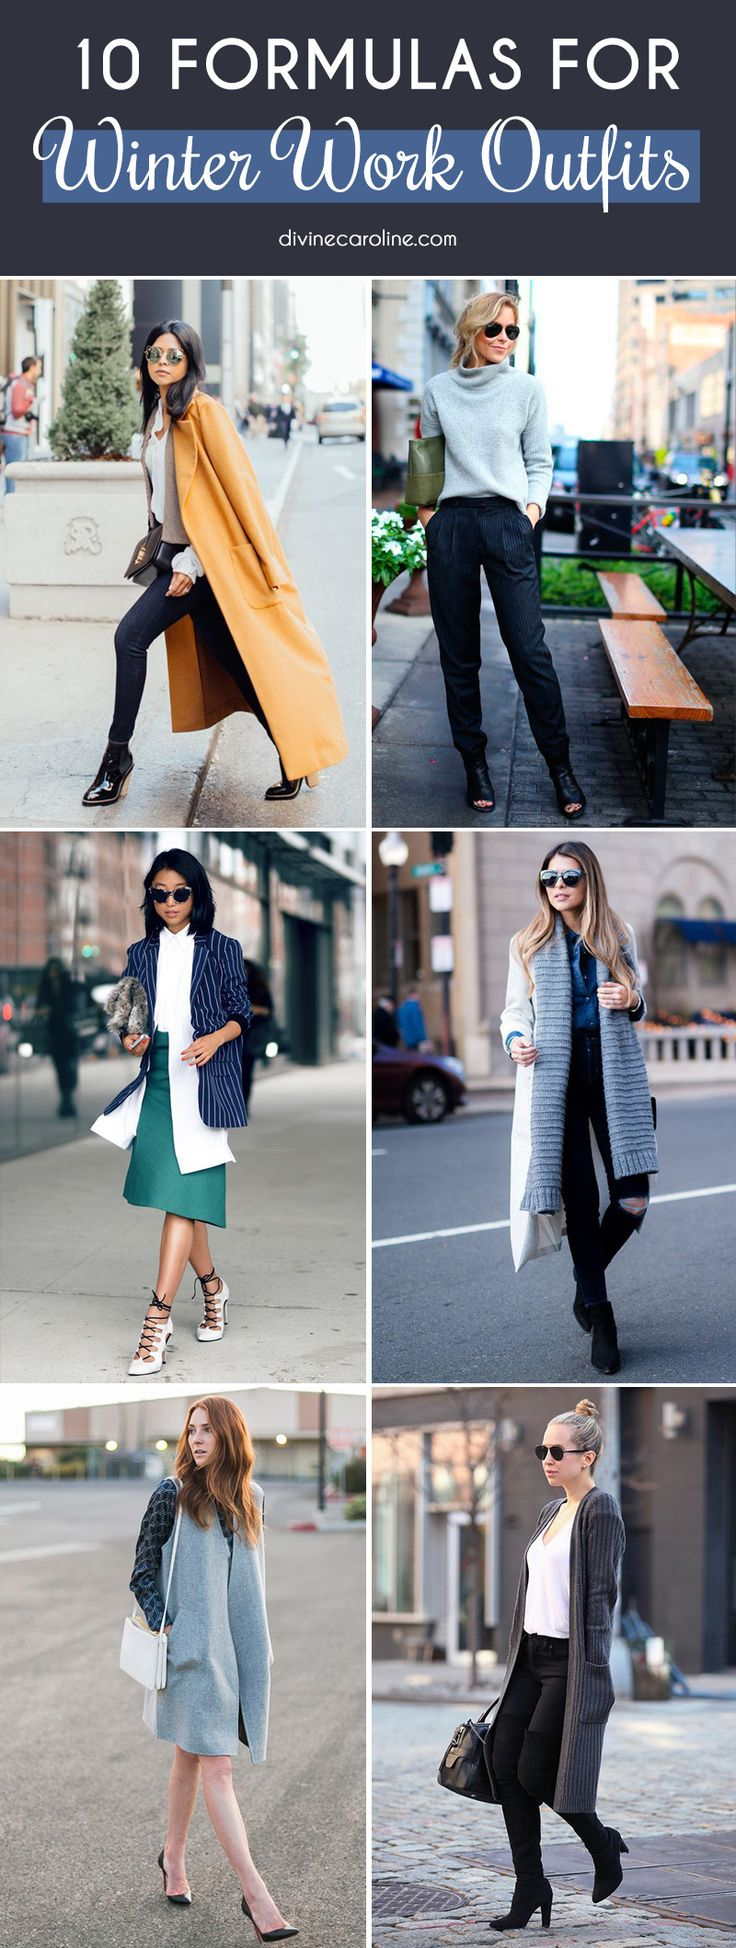 5 golden rules for choosing shoes from Evelina Khromtchenko